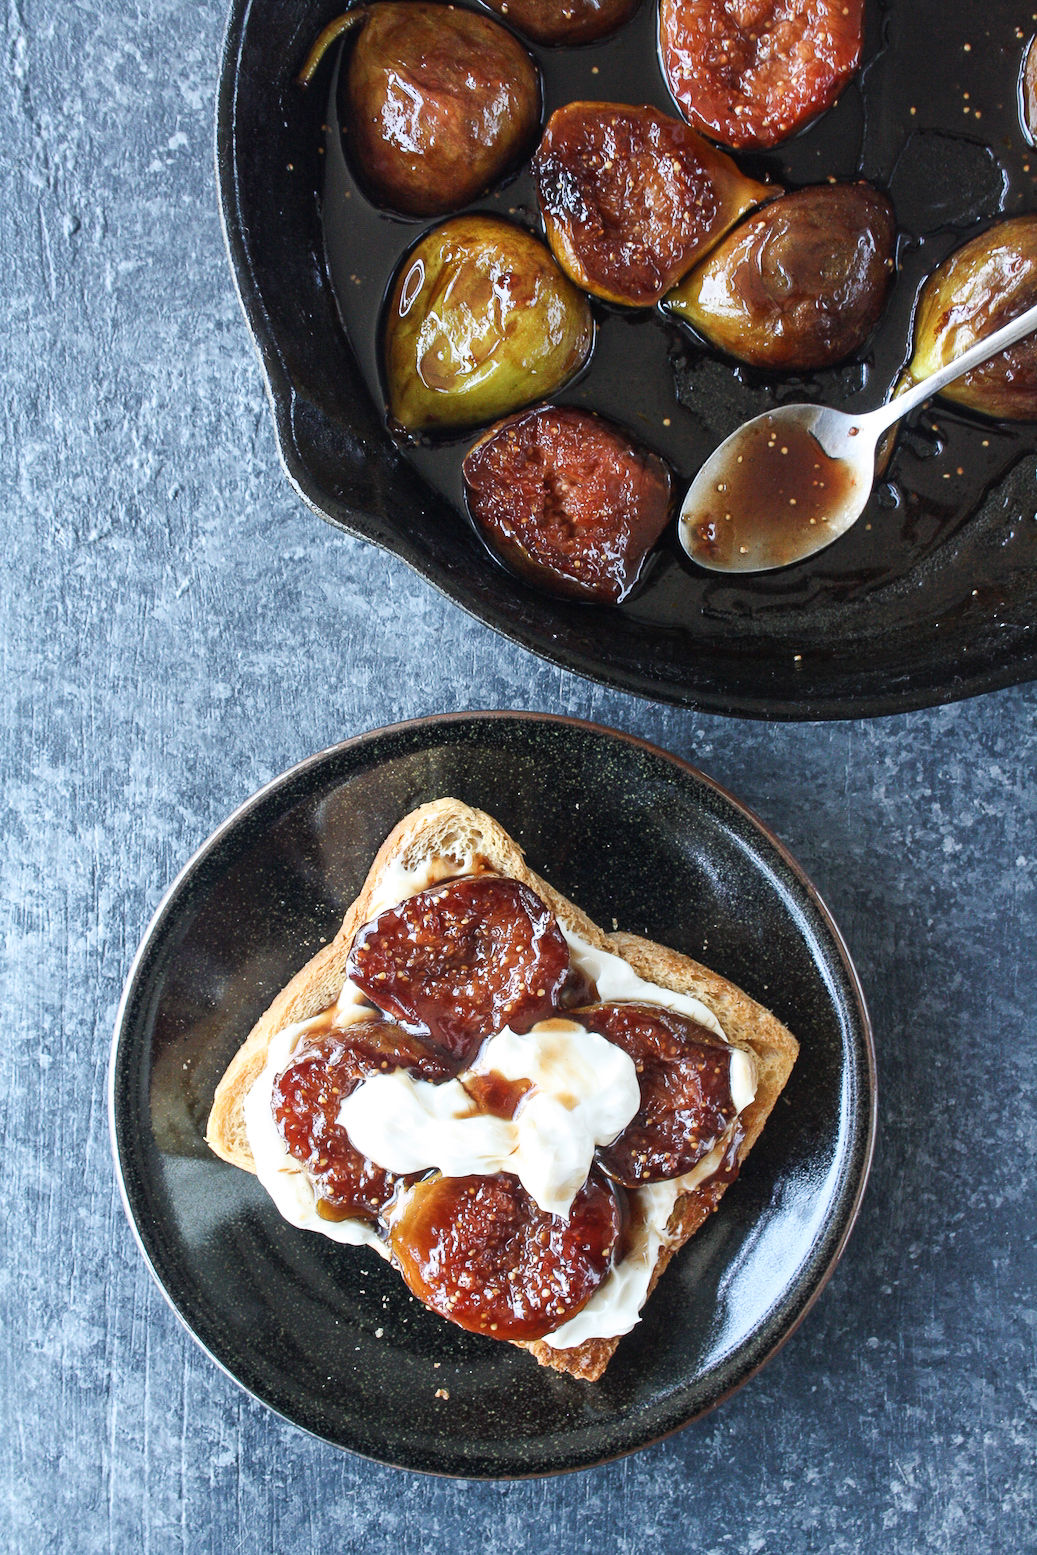 Tender figs caramelised in honey and balsamic vinegar, served with honey infused hung yogurt